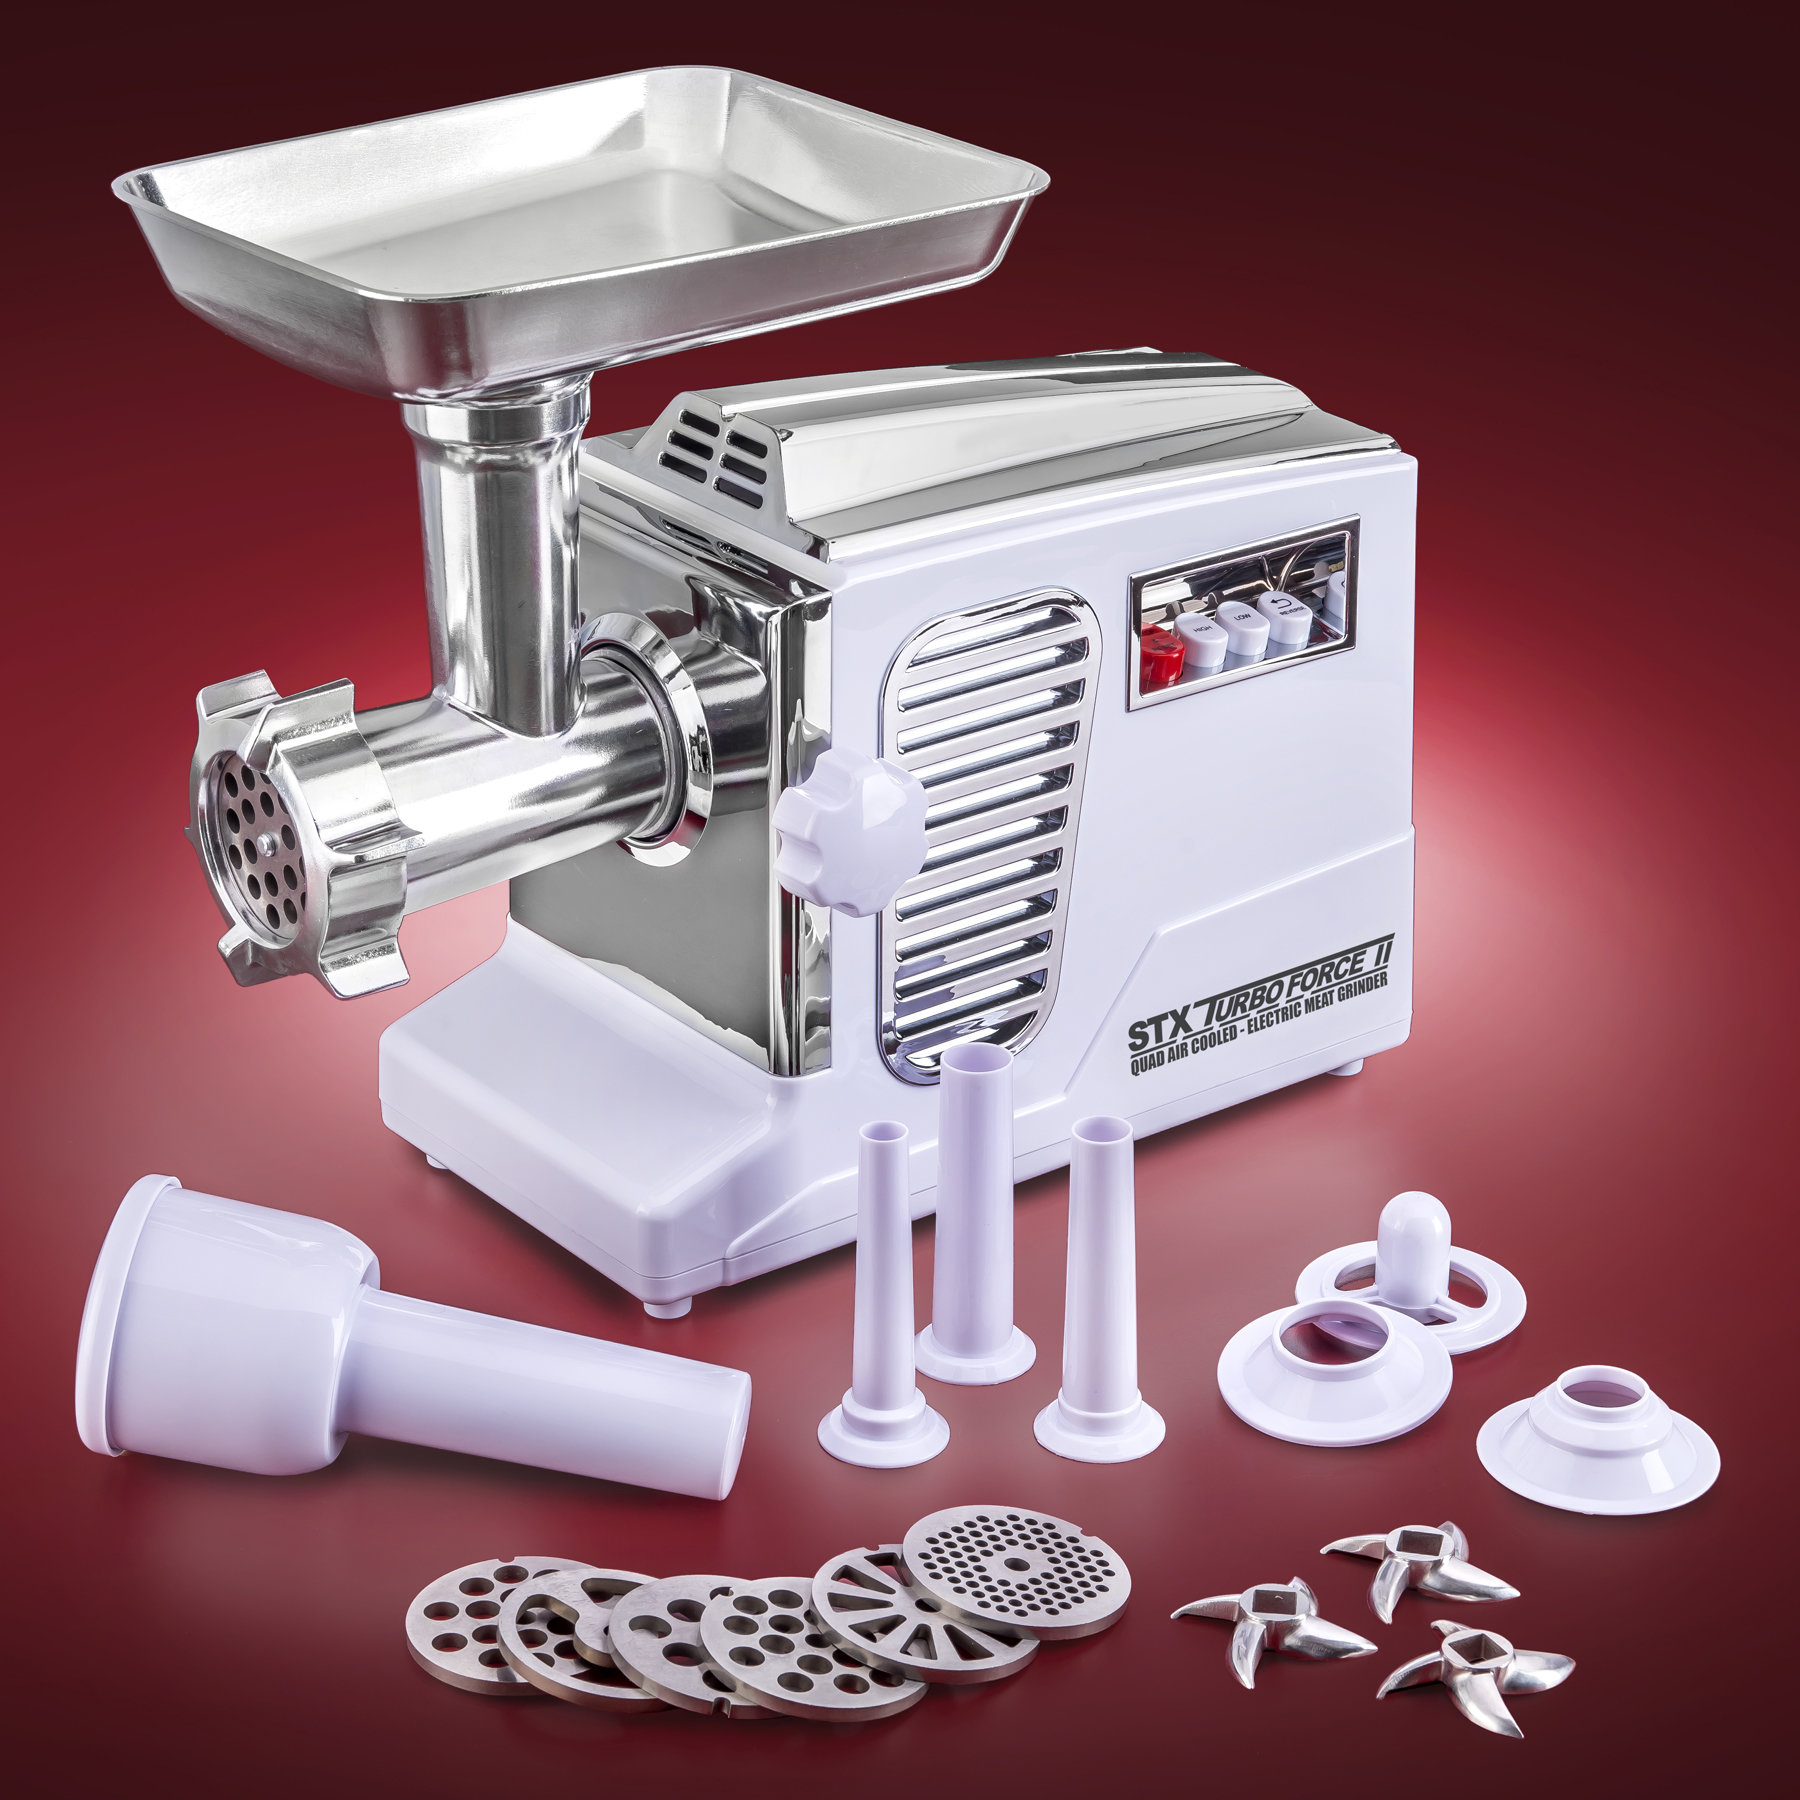 STX Turboforce II 4000 Series Electric Meat Grinder with Foot Pedal - Size #12 - WHITE